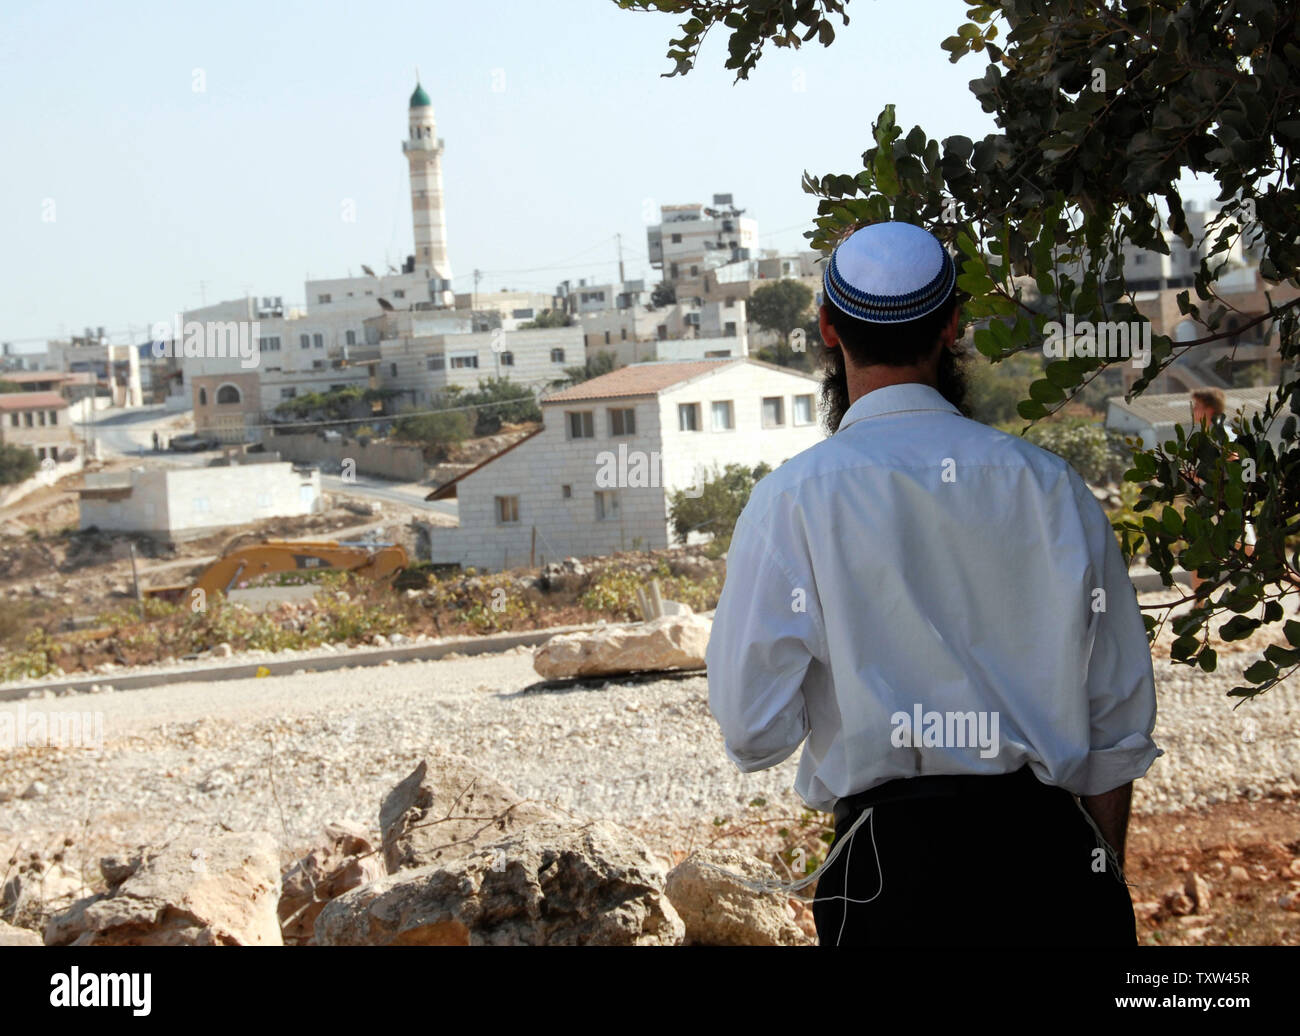 An Israeli right-wing settler looks at a Palestinian village near the Jewish settlement Efrat in the West Bank, September 30, 2007.    (UPI Photo/ Debbie Hill) - Stock Image